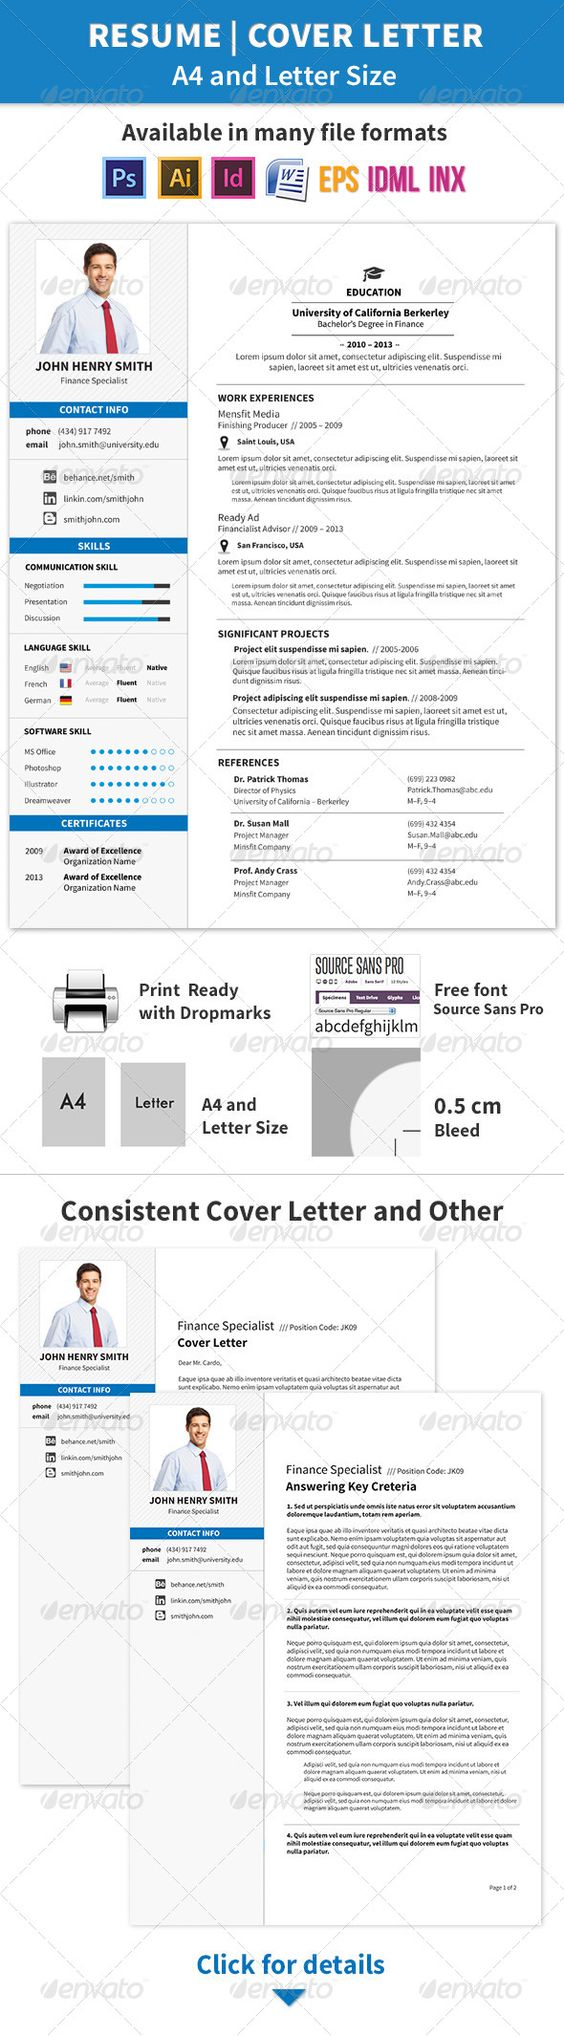 what size font should a cover letter be - pinterest the world s catalog of ideas